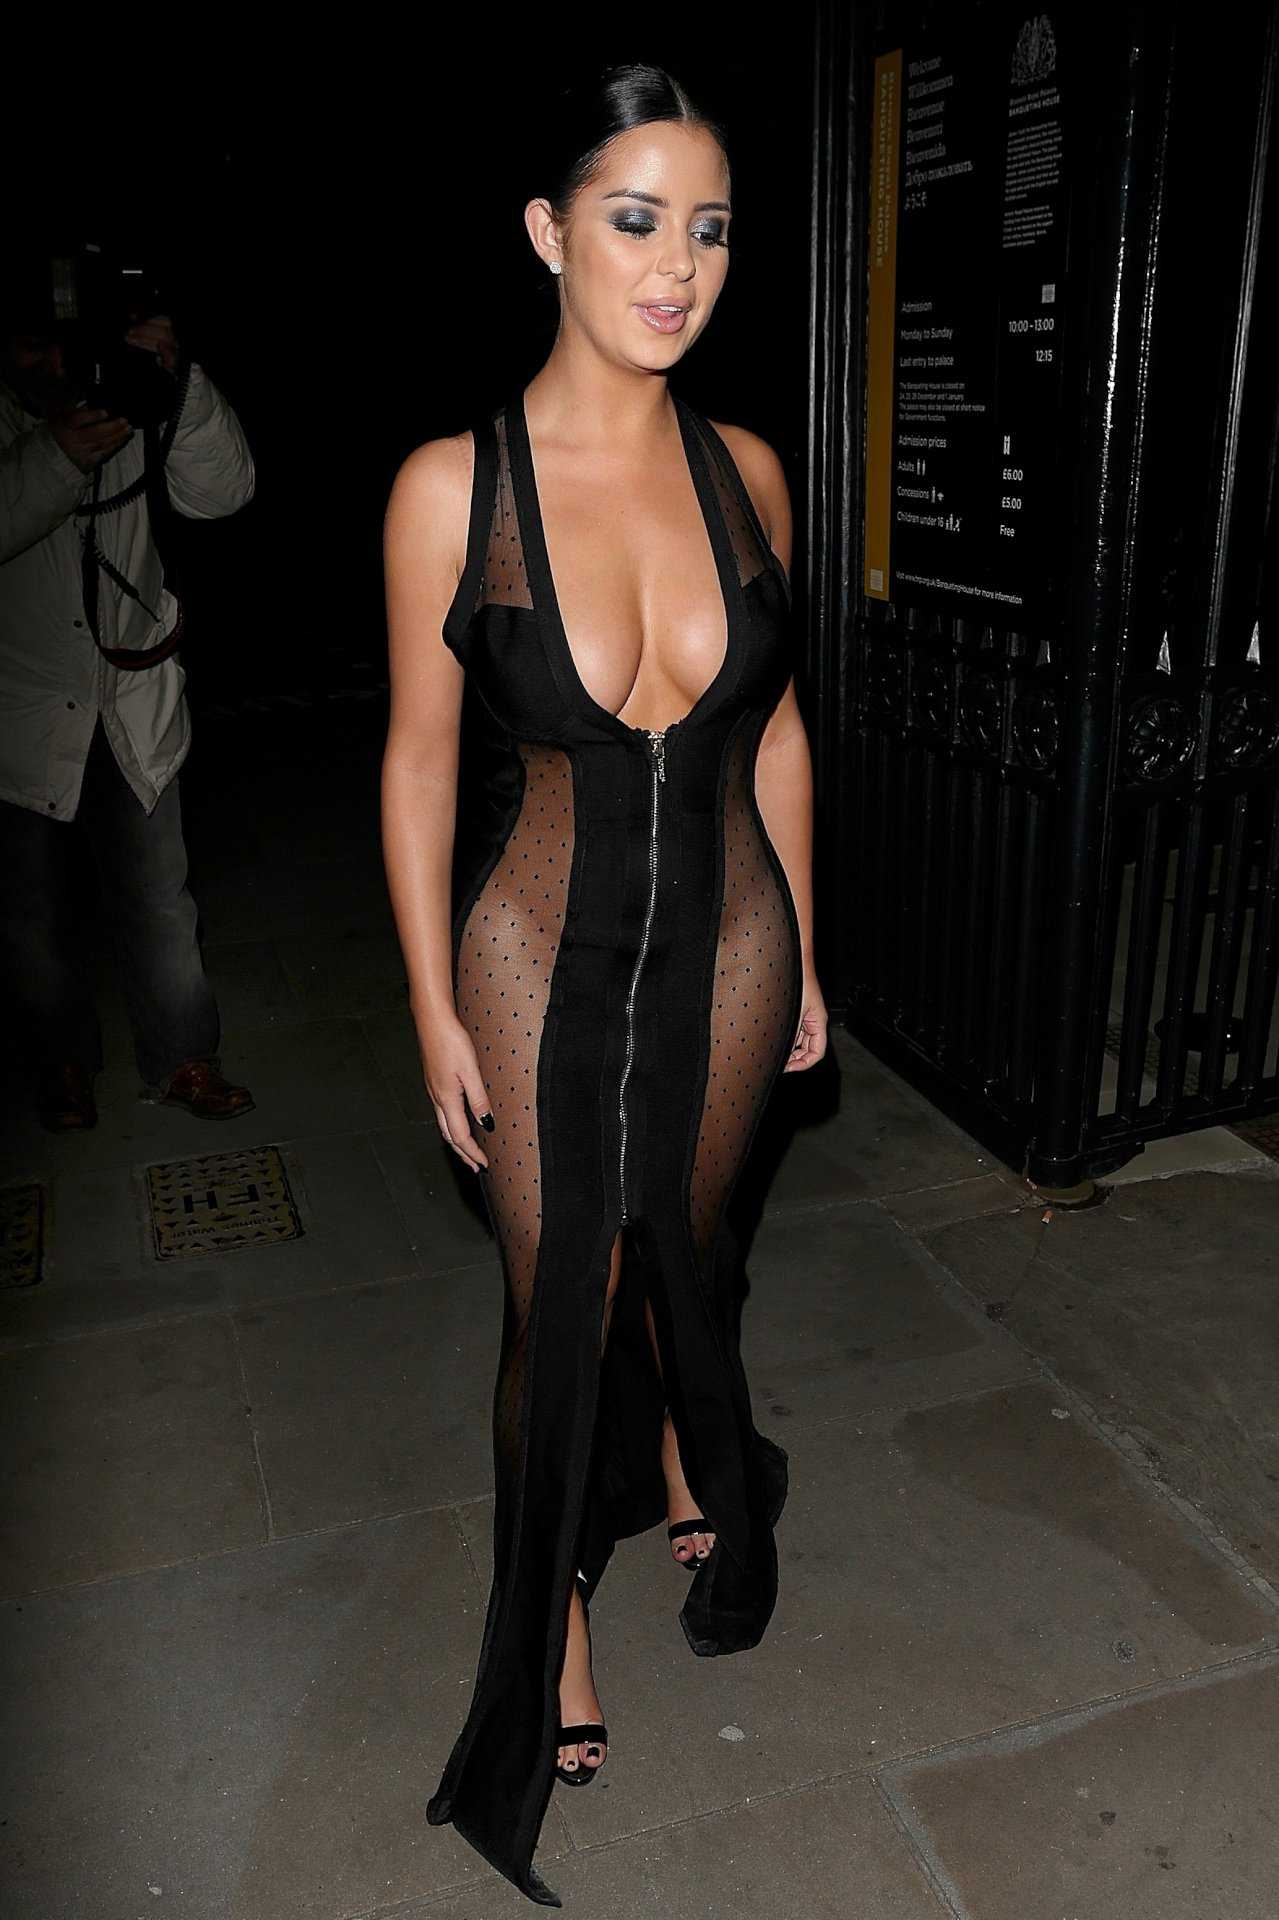 demi-rose-e-seu-vestido-sexy-no-beauty-awards-em-londres05